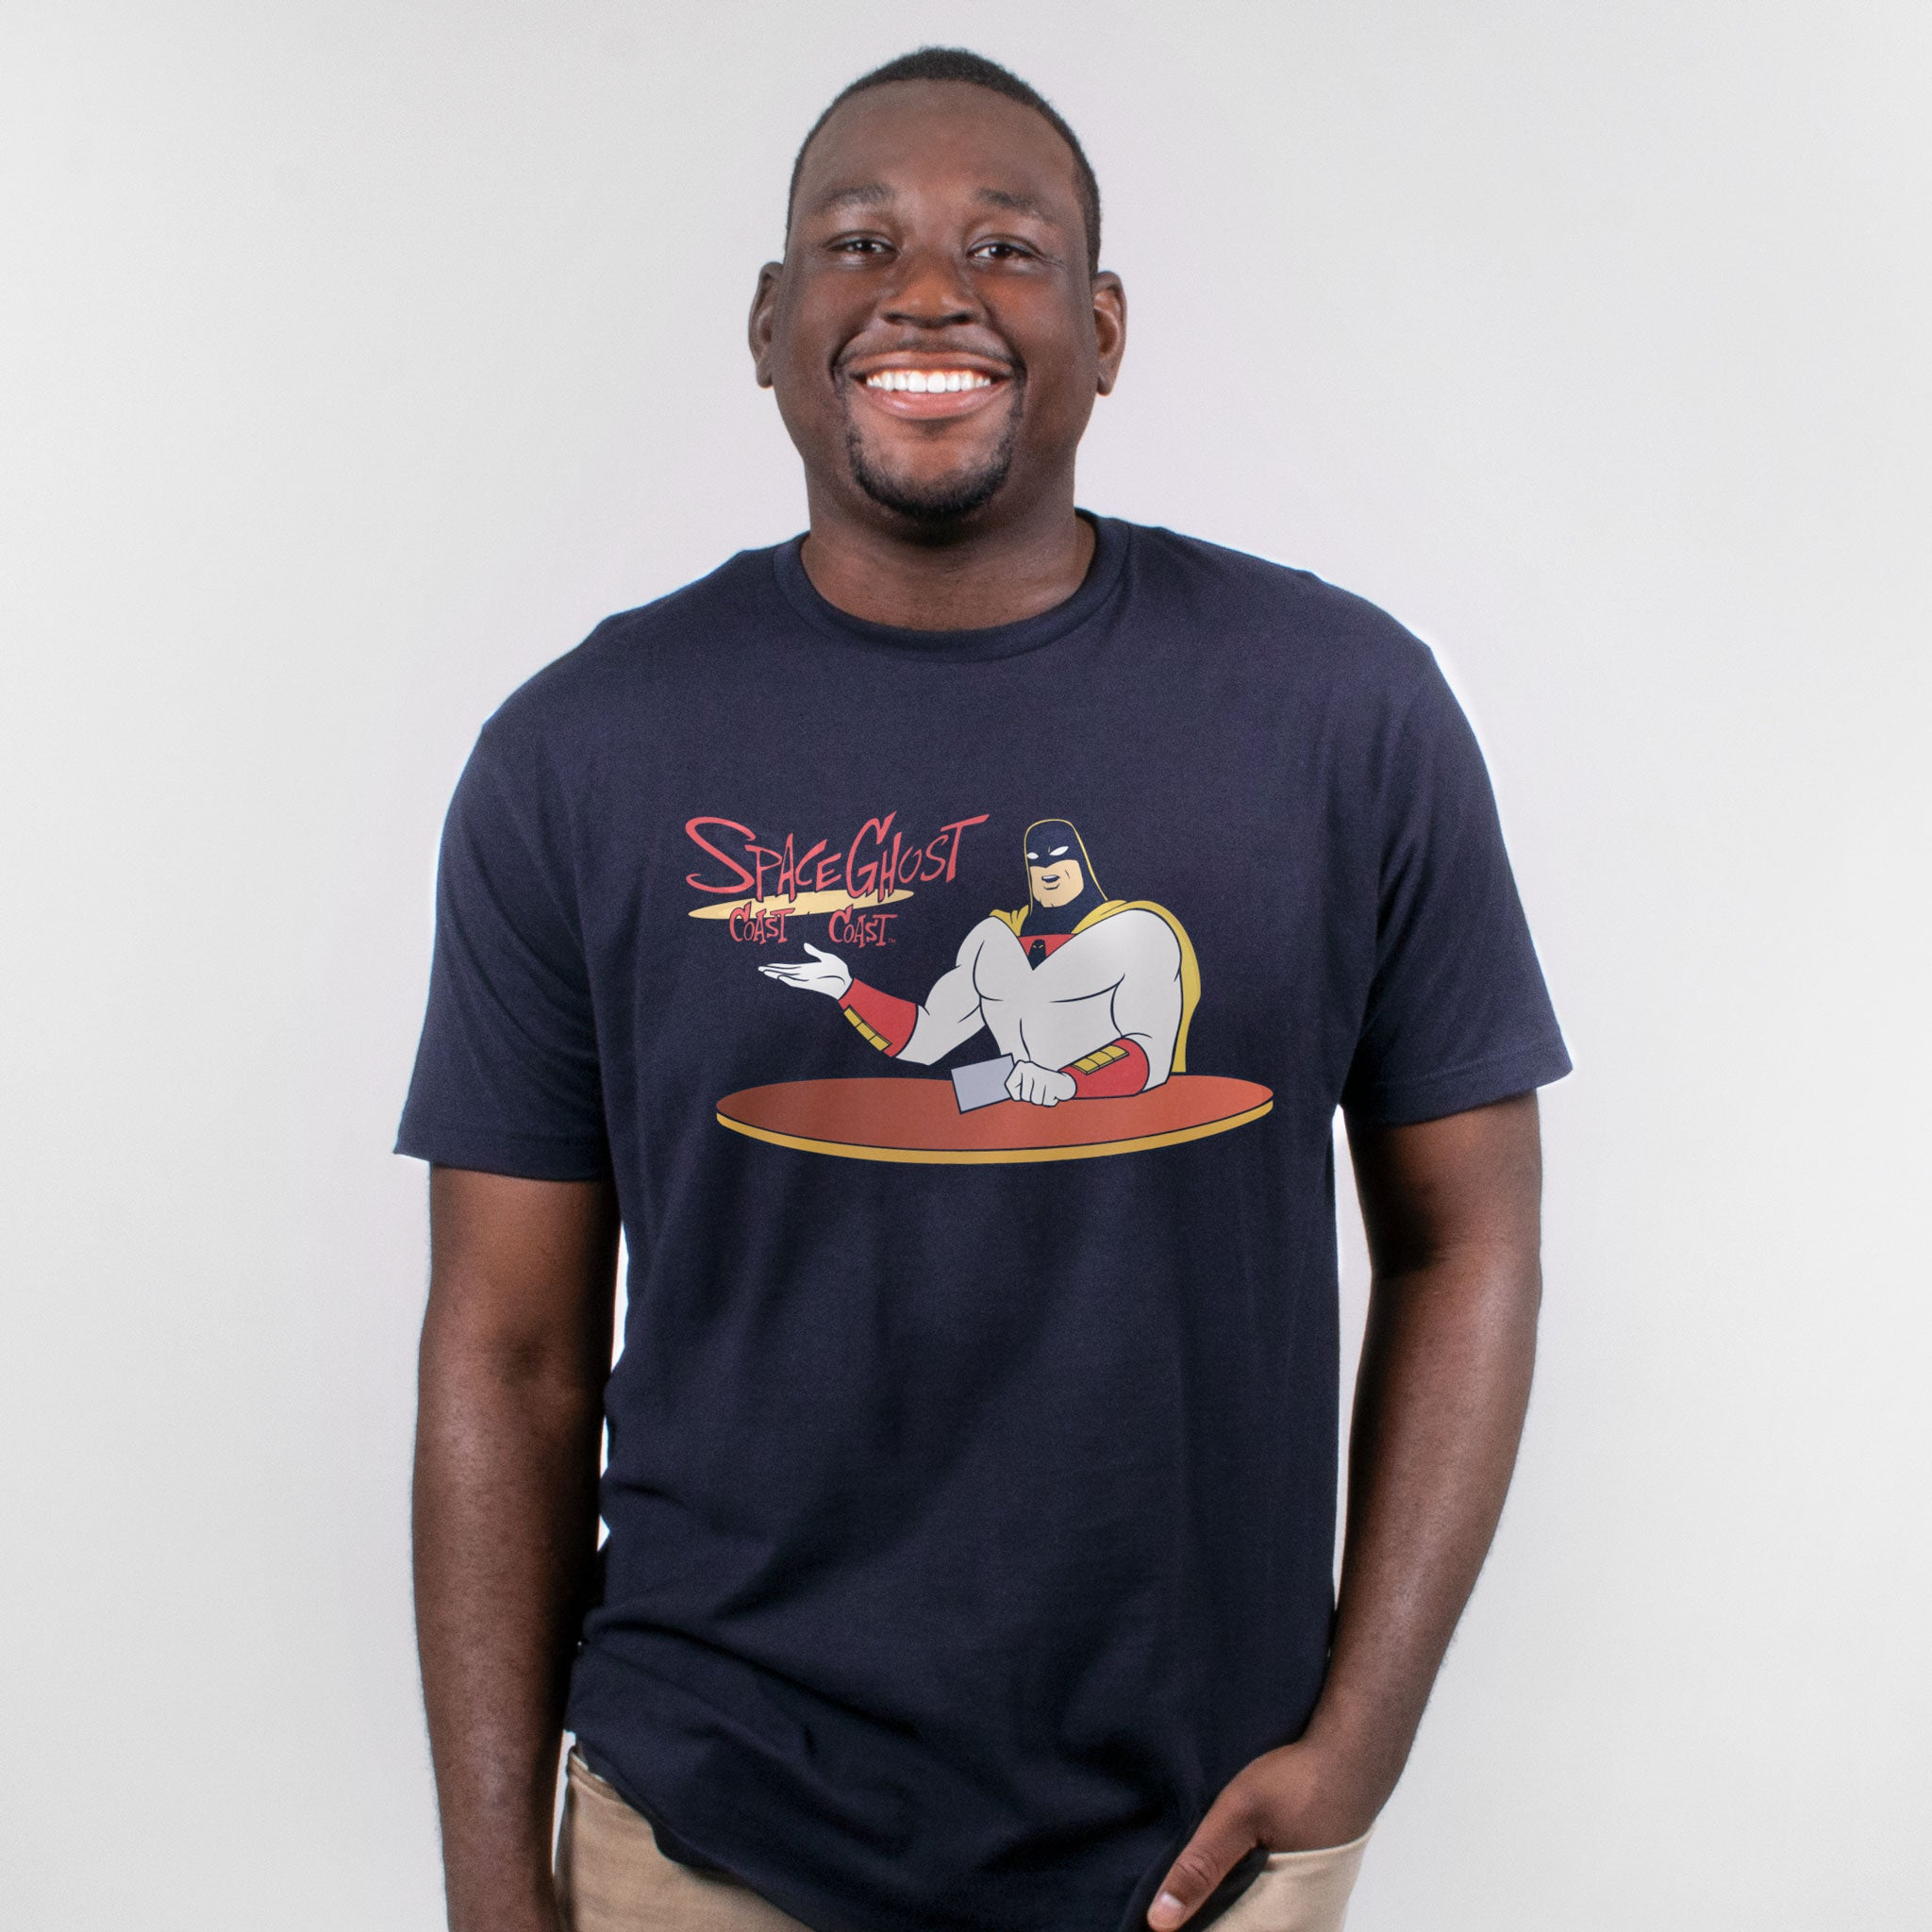 space ghost cartoon network adult swim t-shirt graphic shirt men's apparel culturefly